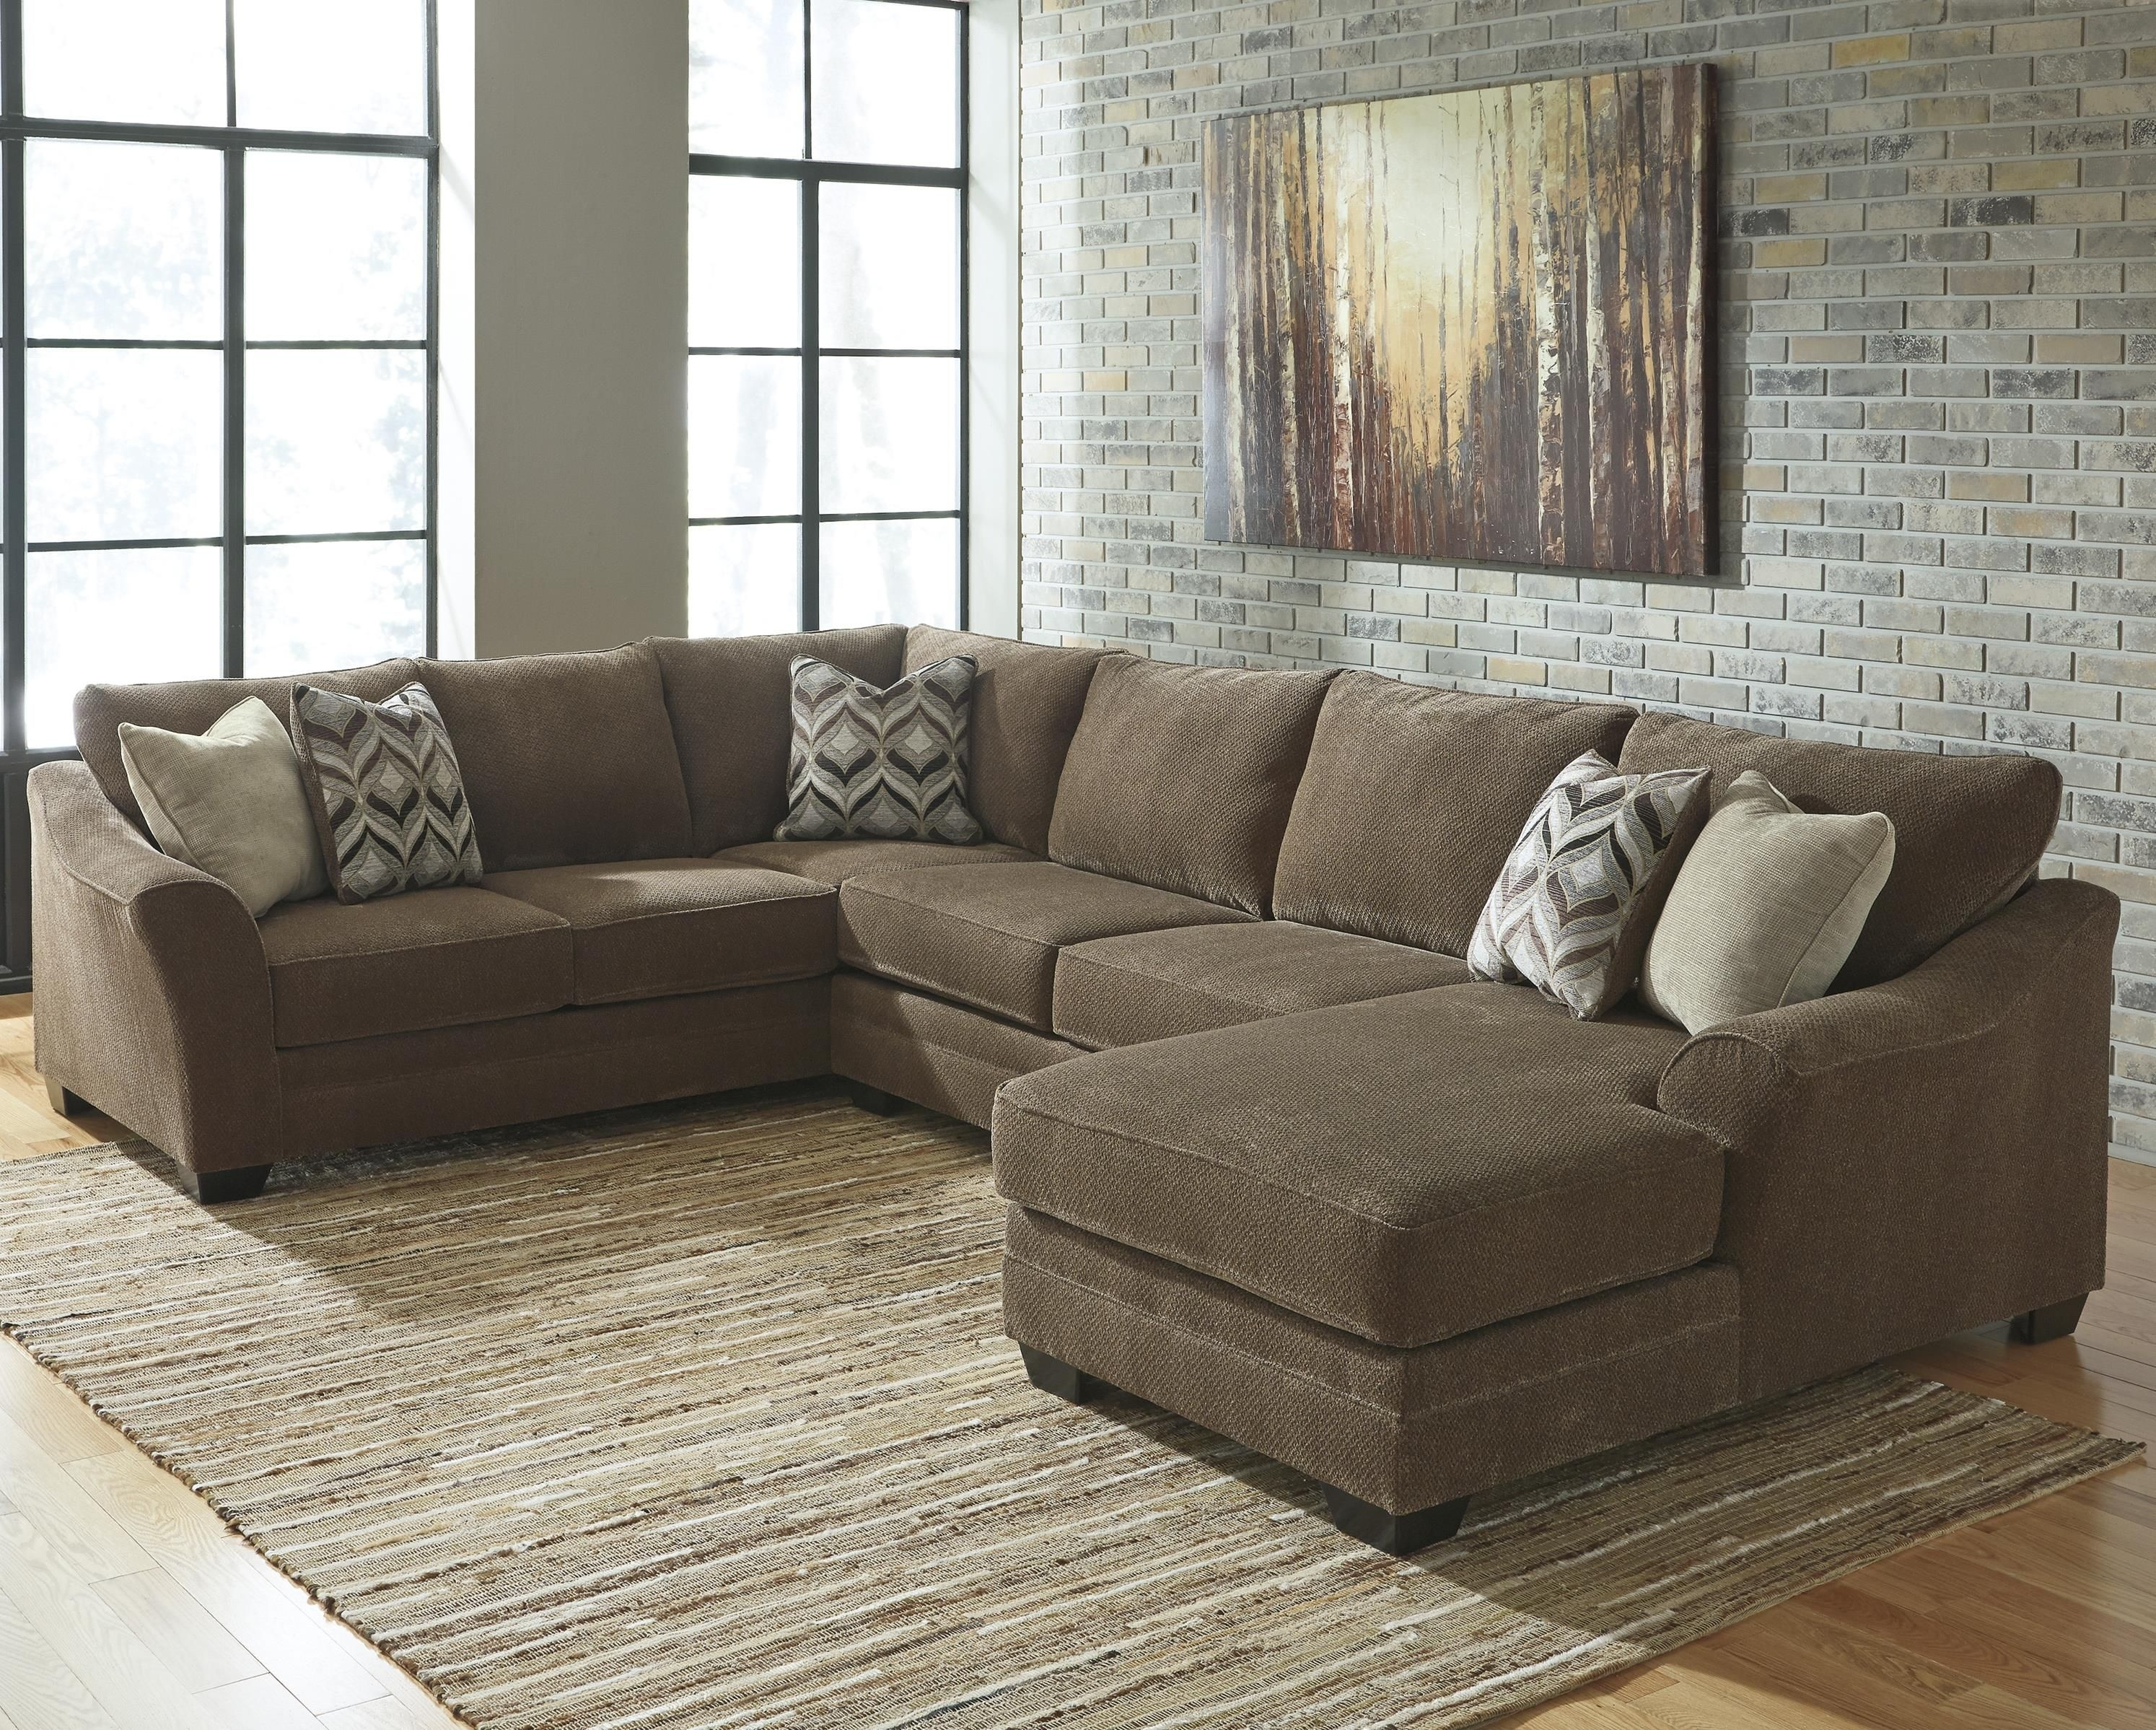 Justyna Contemporary 3 Piece Sectional With Right Chaise With Royal Furniture Sectional Sofas (View 3 of 10)